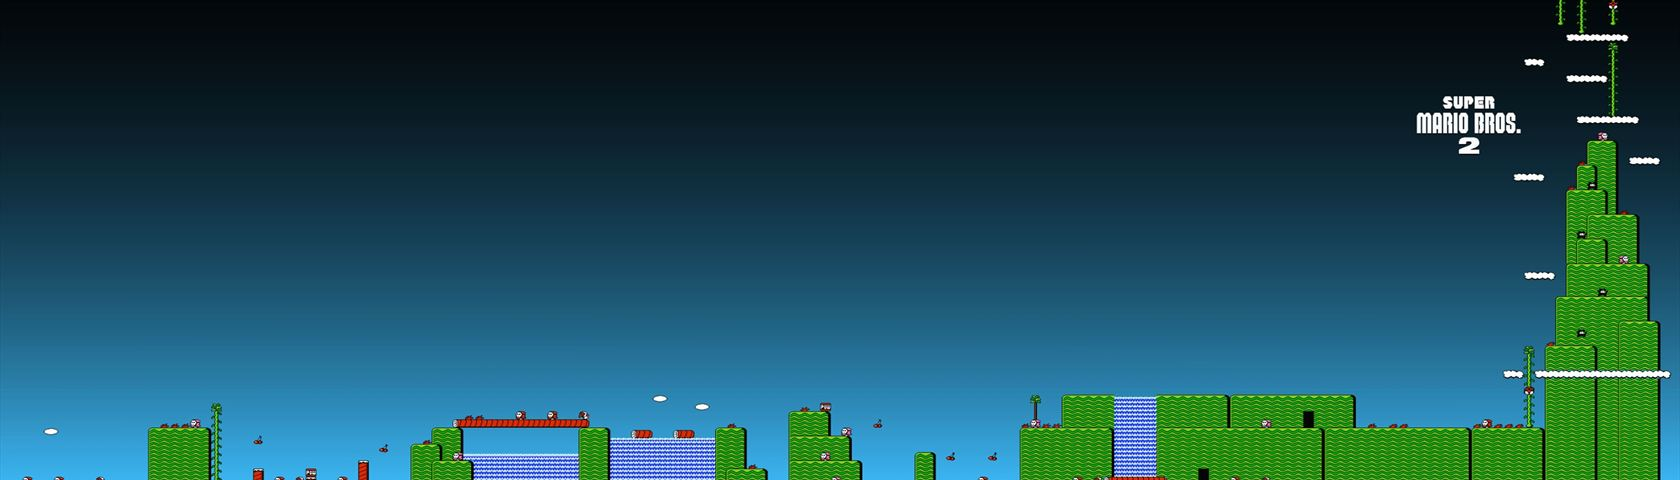 Super Mario Bros 2 Images Wallpaperfusion By Binary Fortress